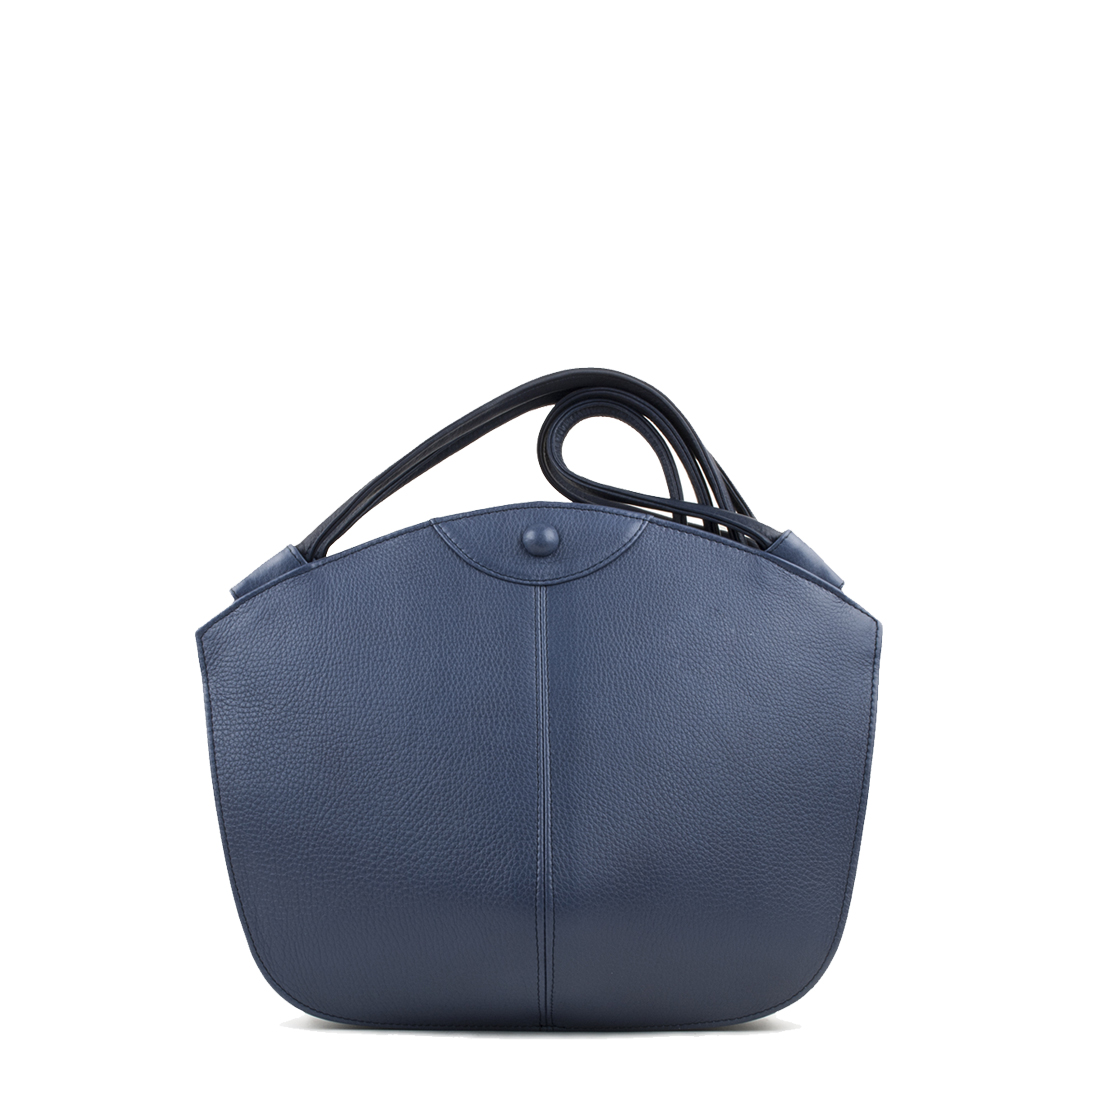 Carmen Chalk Blue Leather Shoulder Bag